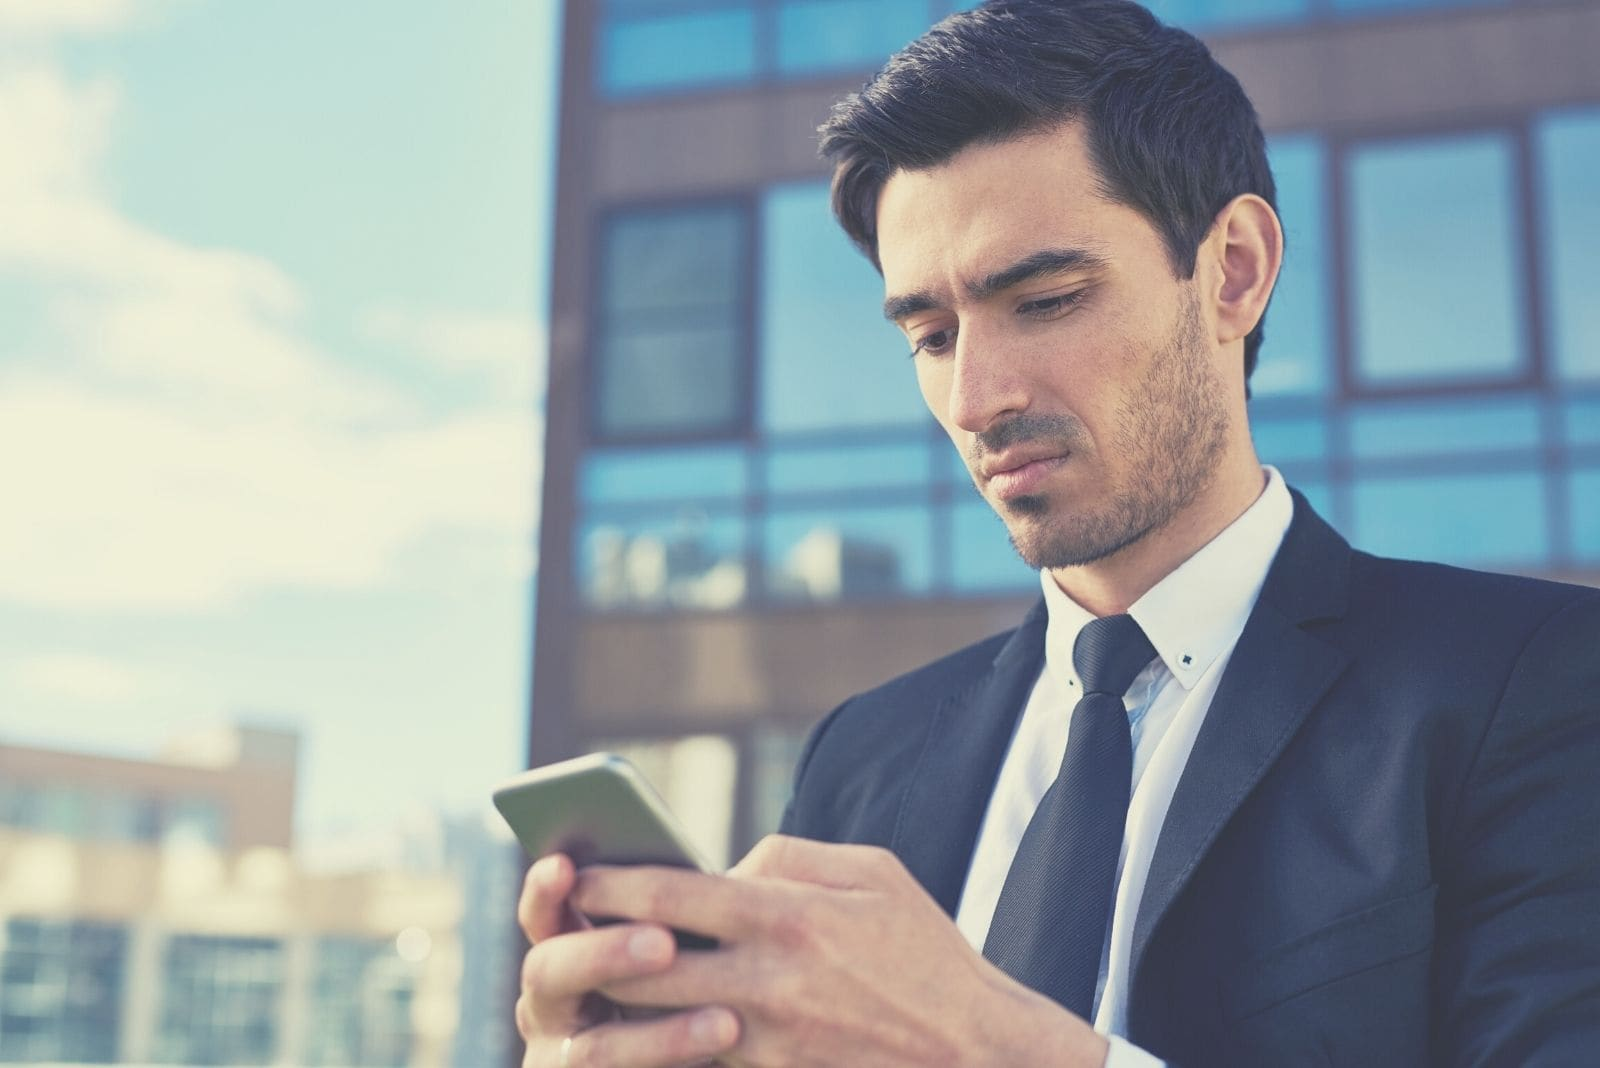 annoyed man answering text message from his smartphone wearing business wear standing outside the office building